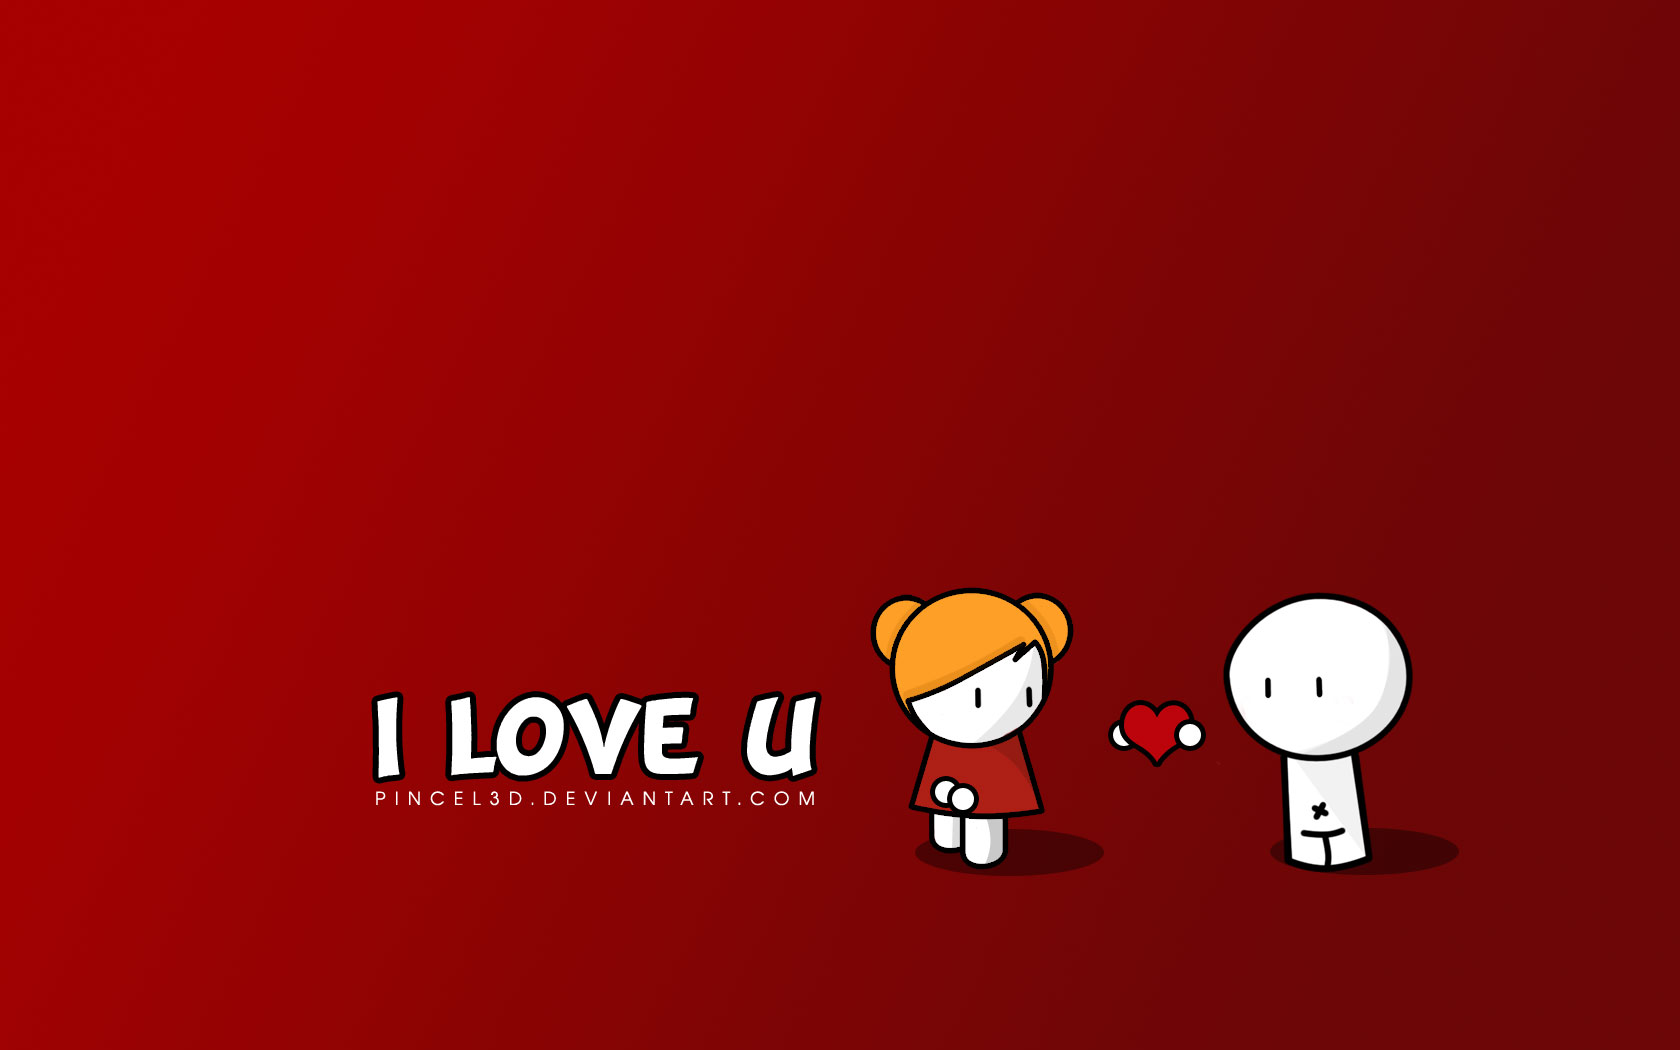 Wallpaper Hd 3d I Love You : I Love You Wallpapers HD A40 - HD Desktop Wallpapers 4k HD